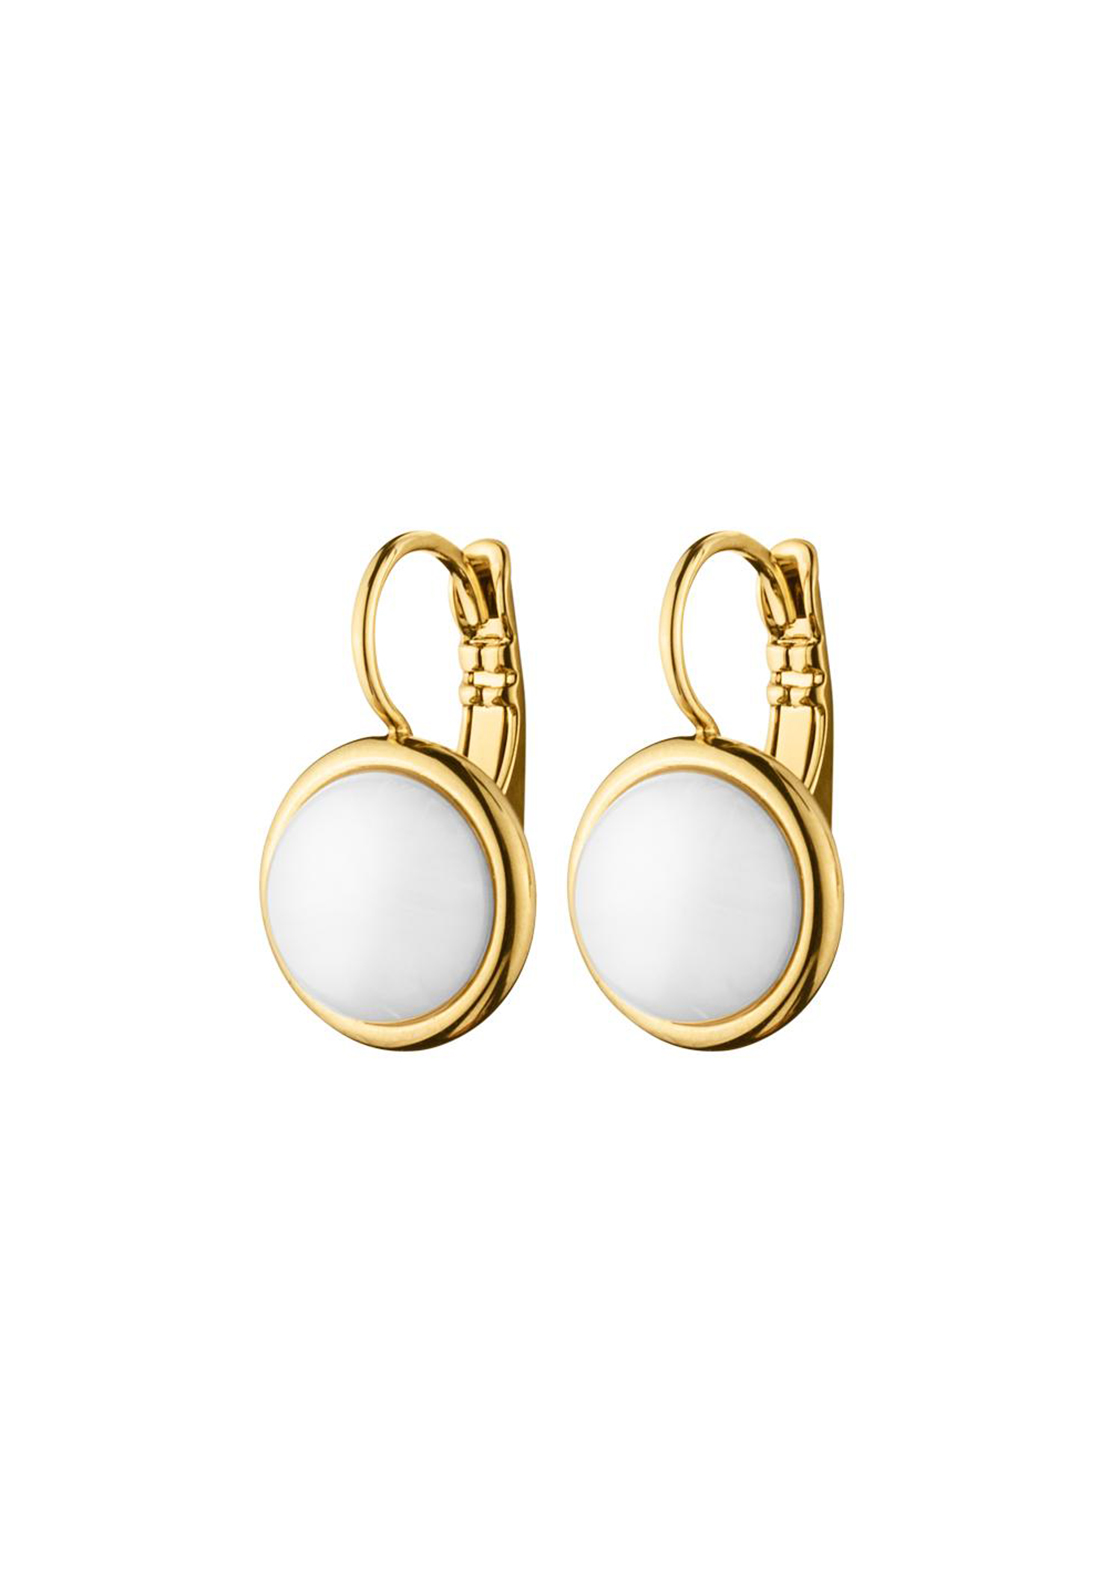 Dyrberg Kern Poala French Hook Earrings, Gold and White